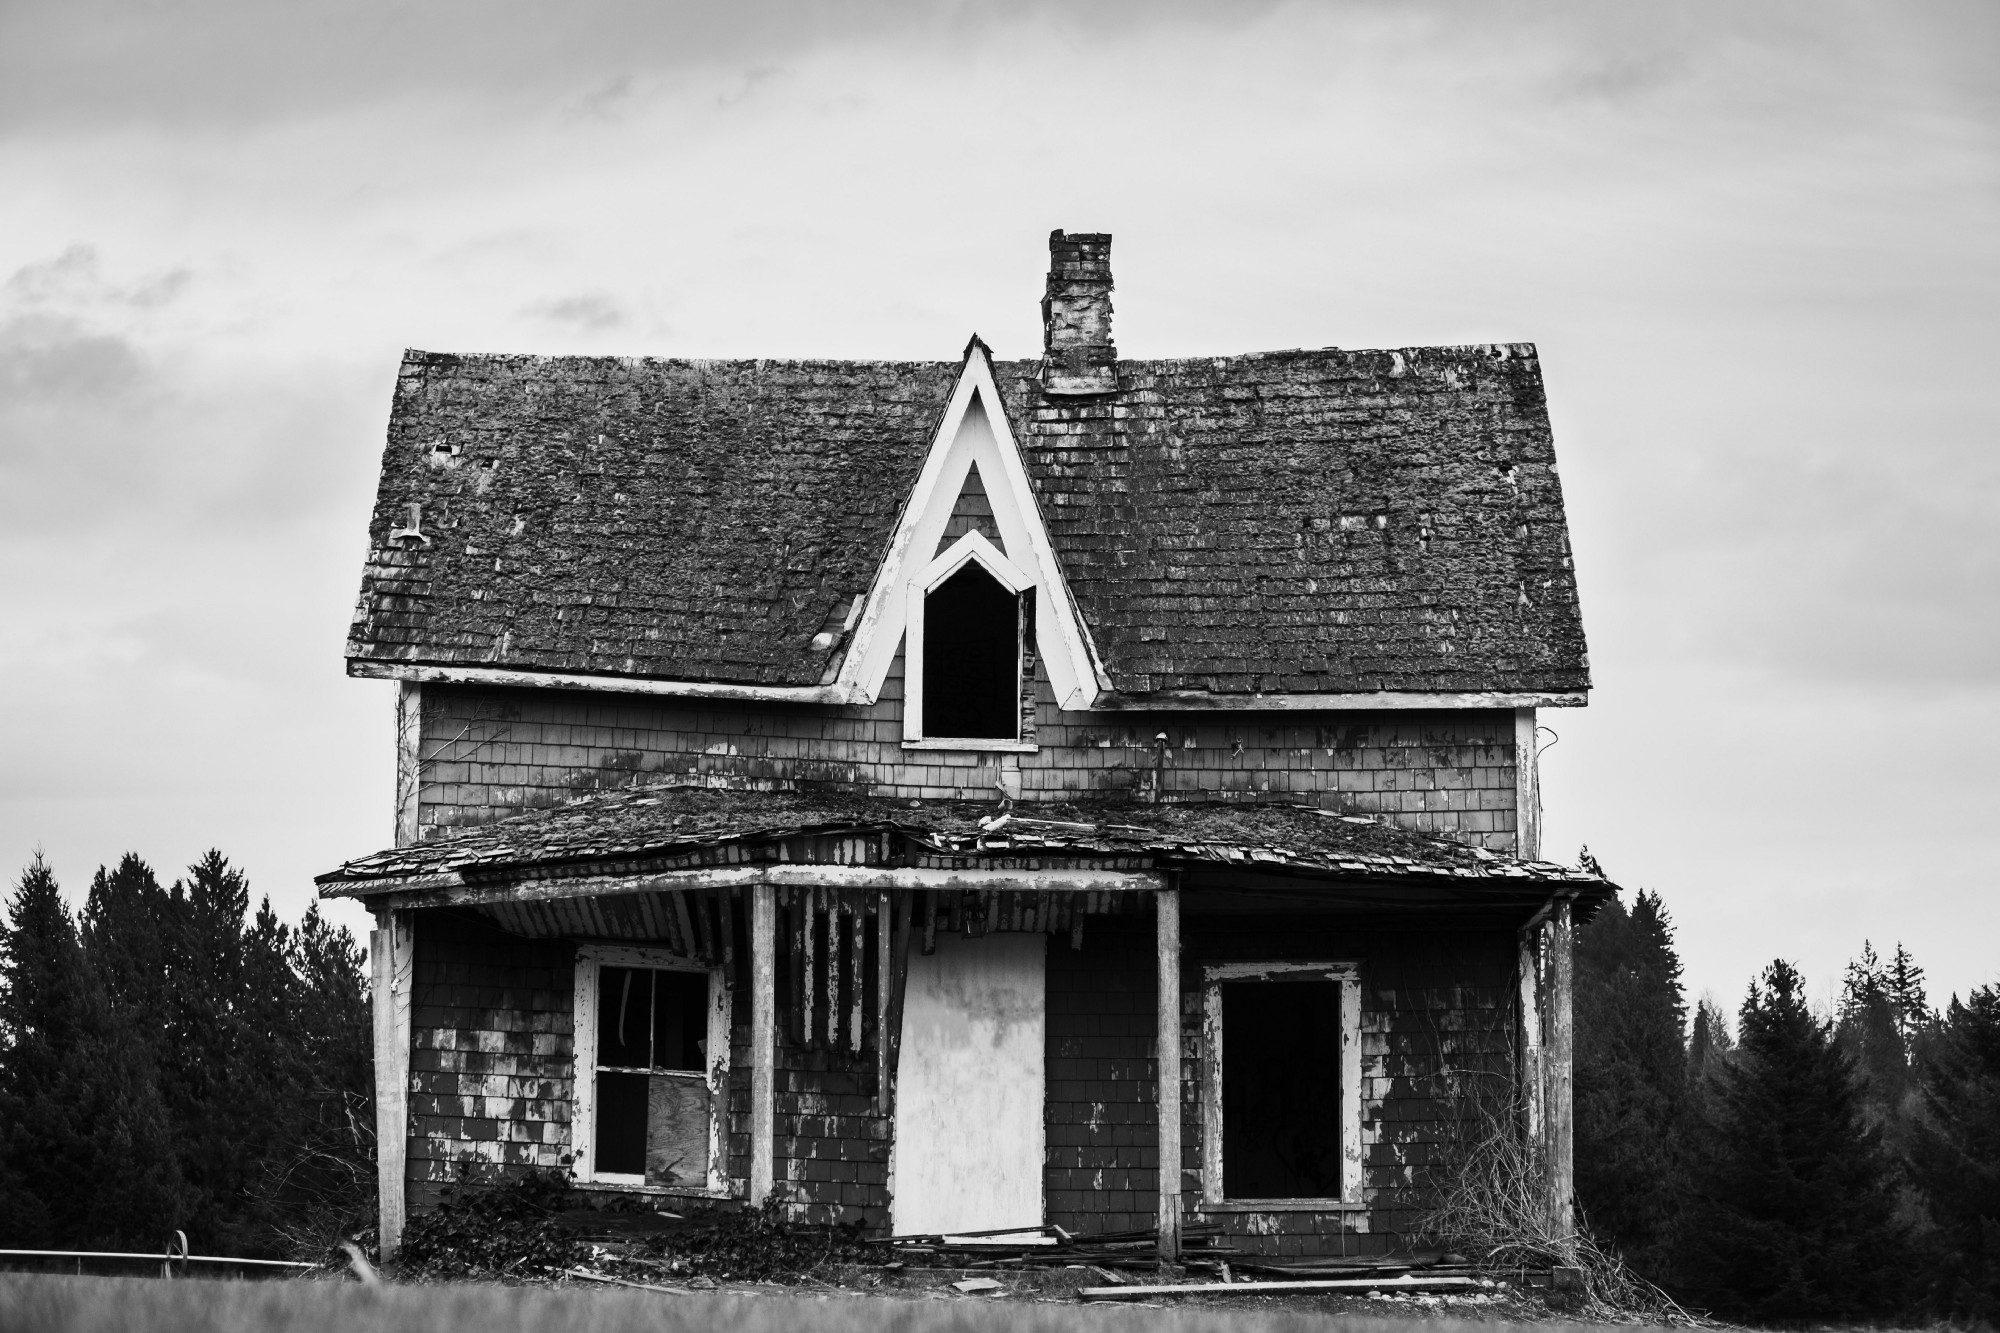 Black and white house in need of repair